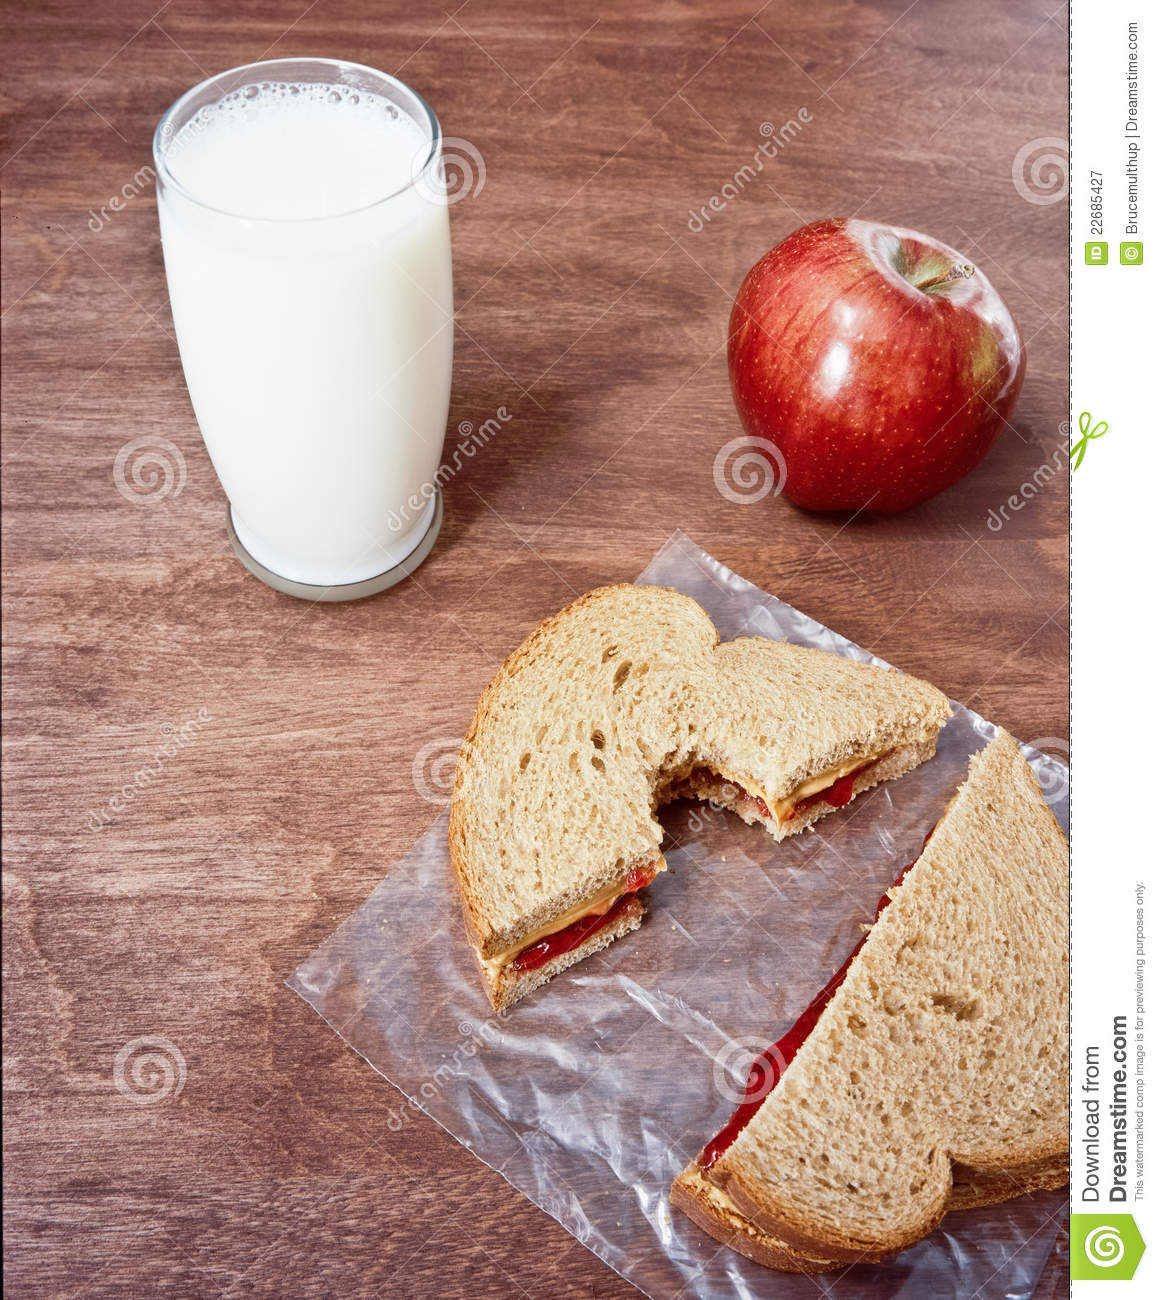 Peanut Butter sandwich with a glass of milk and an apple. Bite taken ...